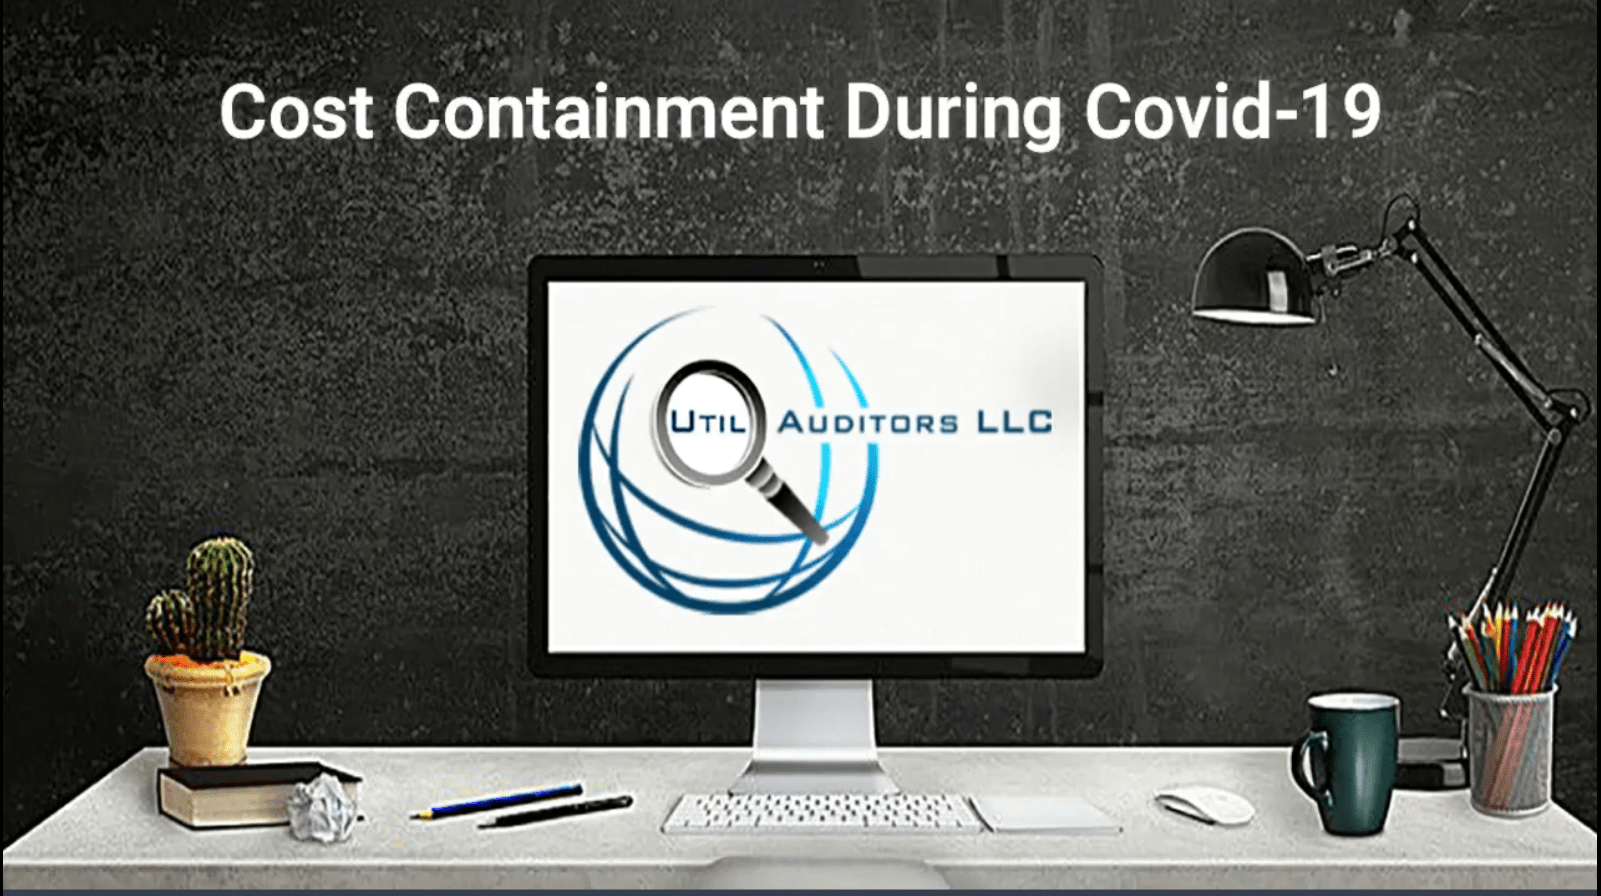 Cost containment during Covid-19